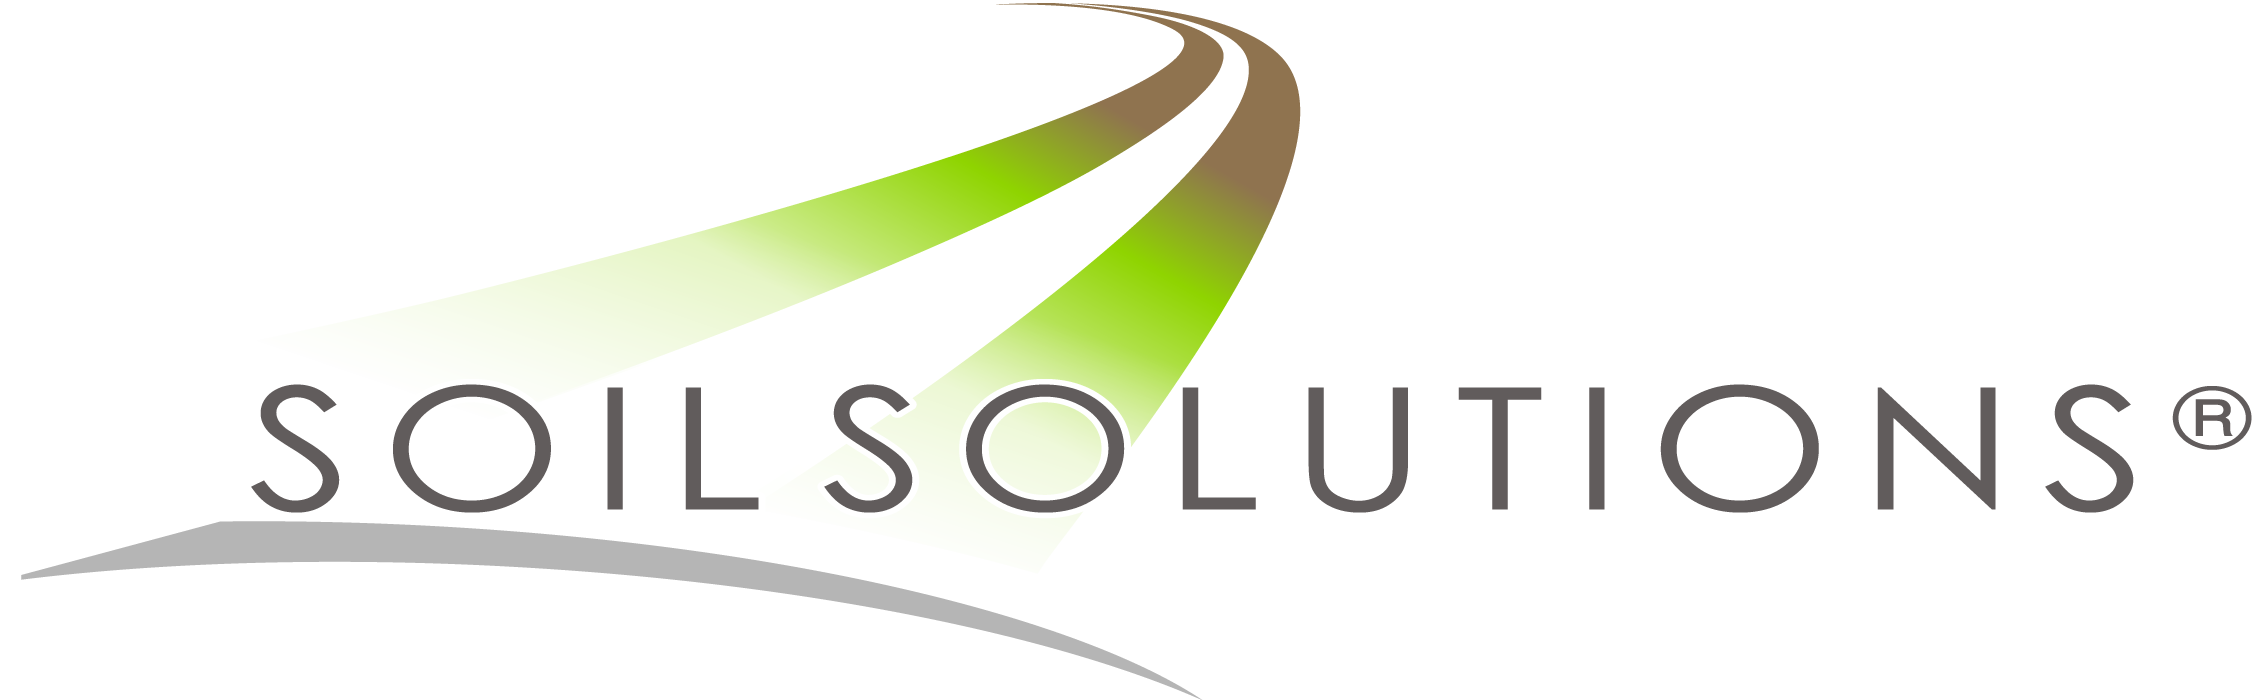 Soil solutions providing engineered valued solutions